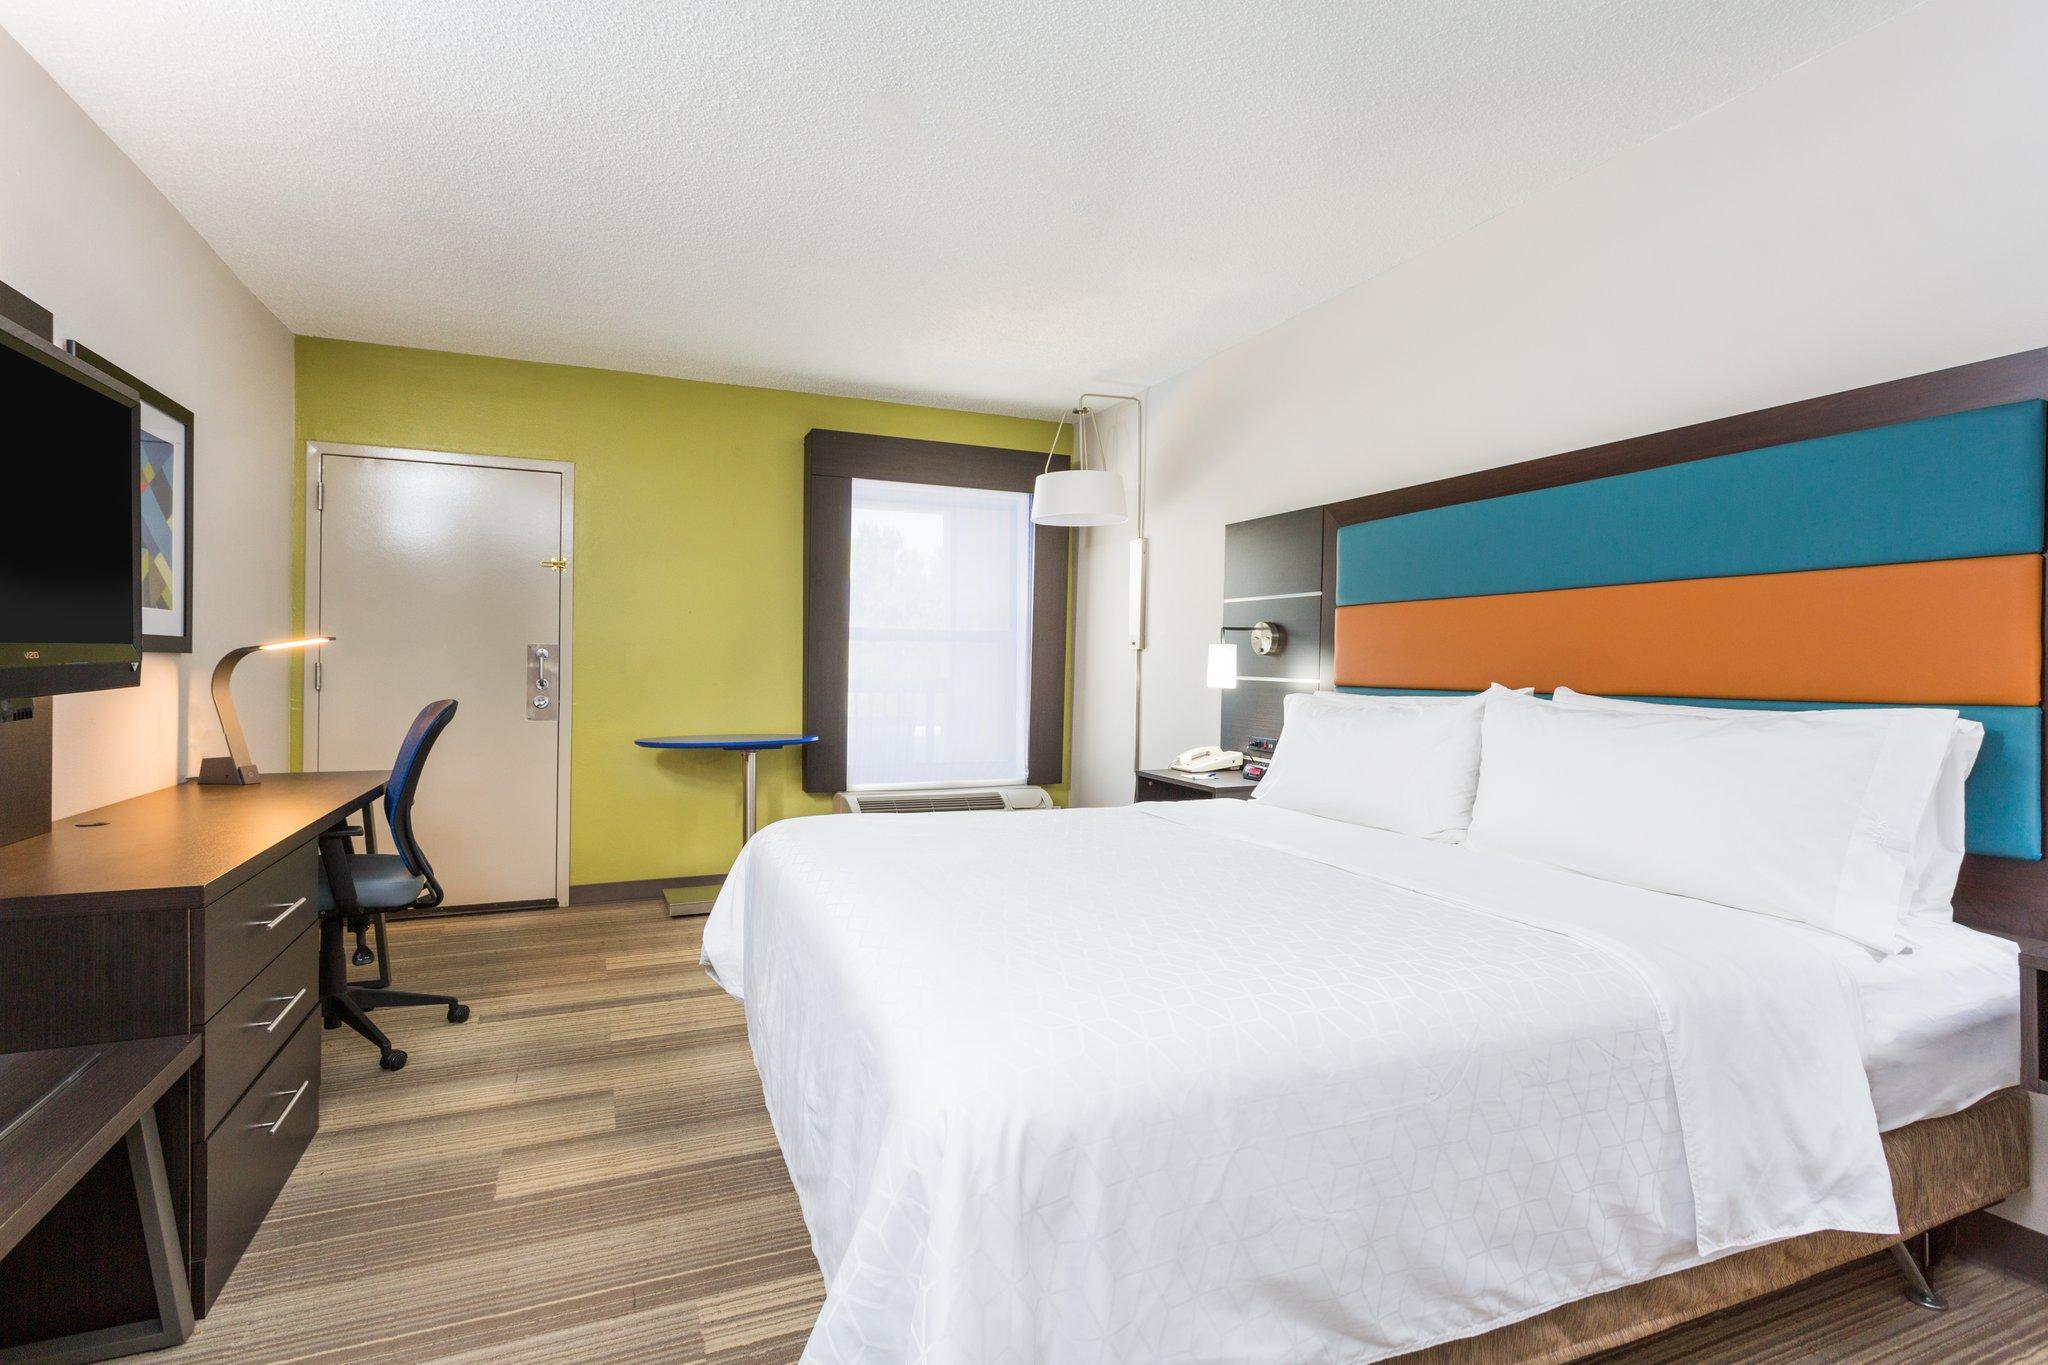 Holiday Inn Express Plymouth Plymouth Nc Room Rates